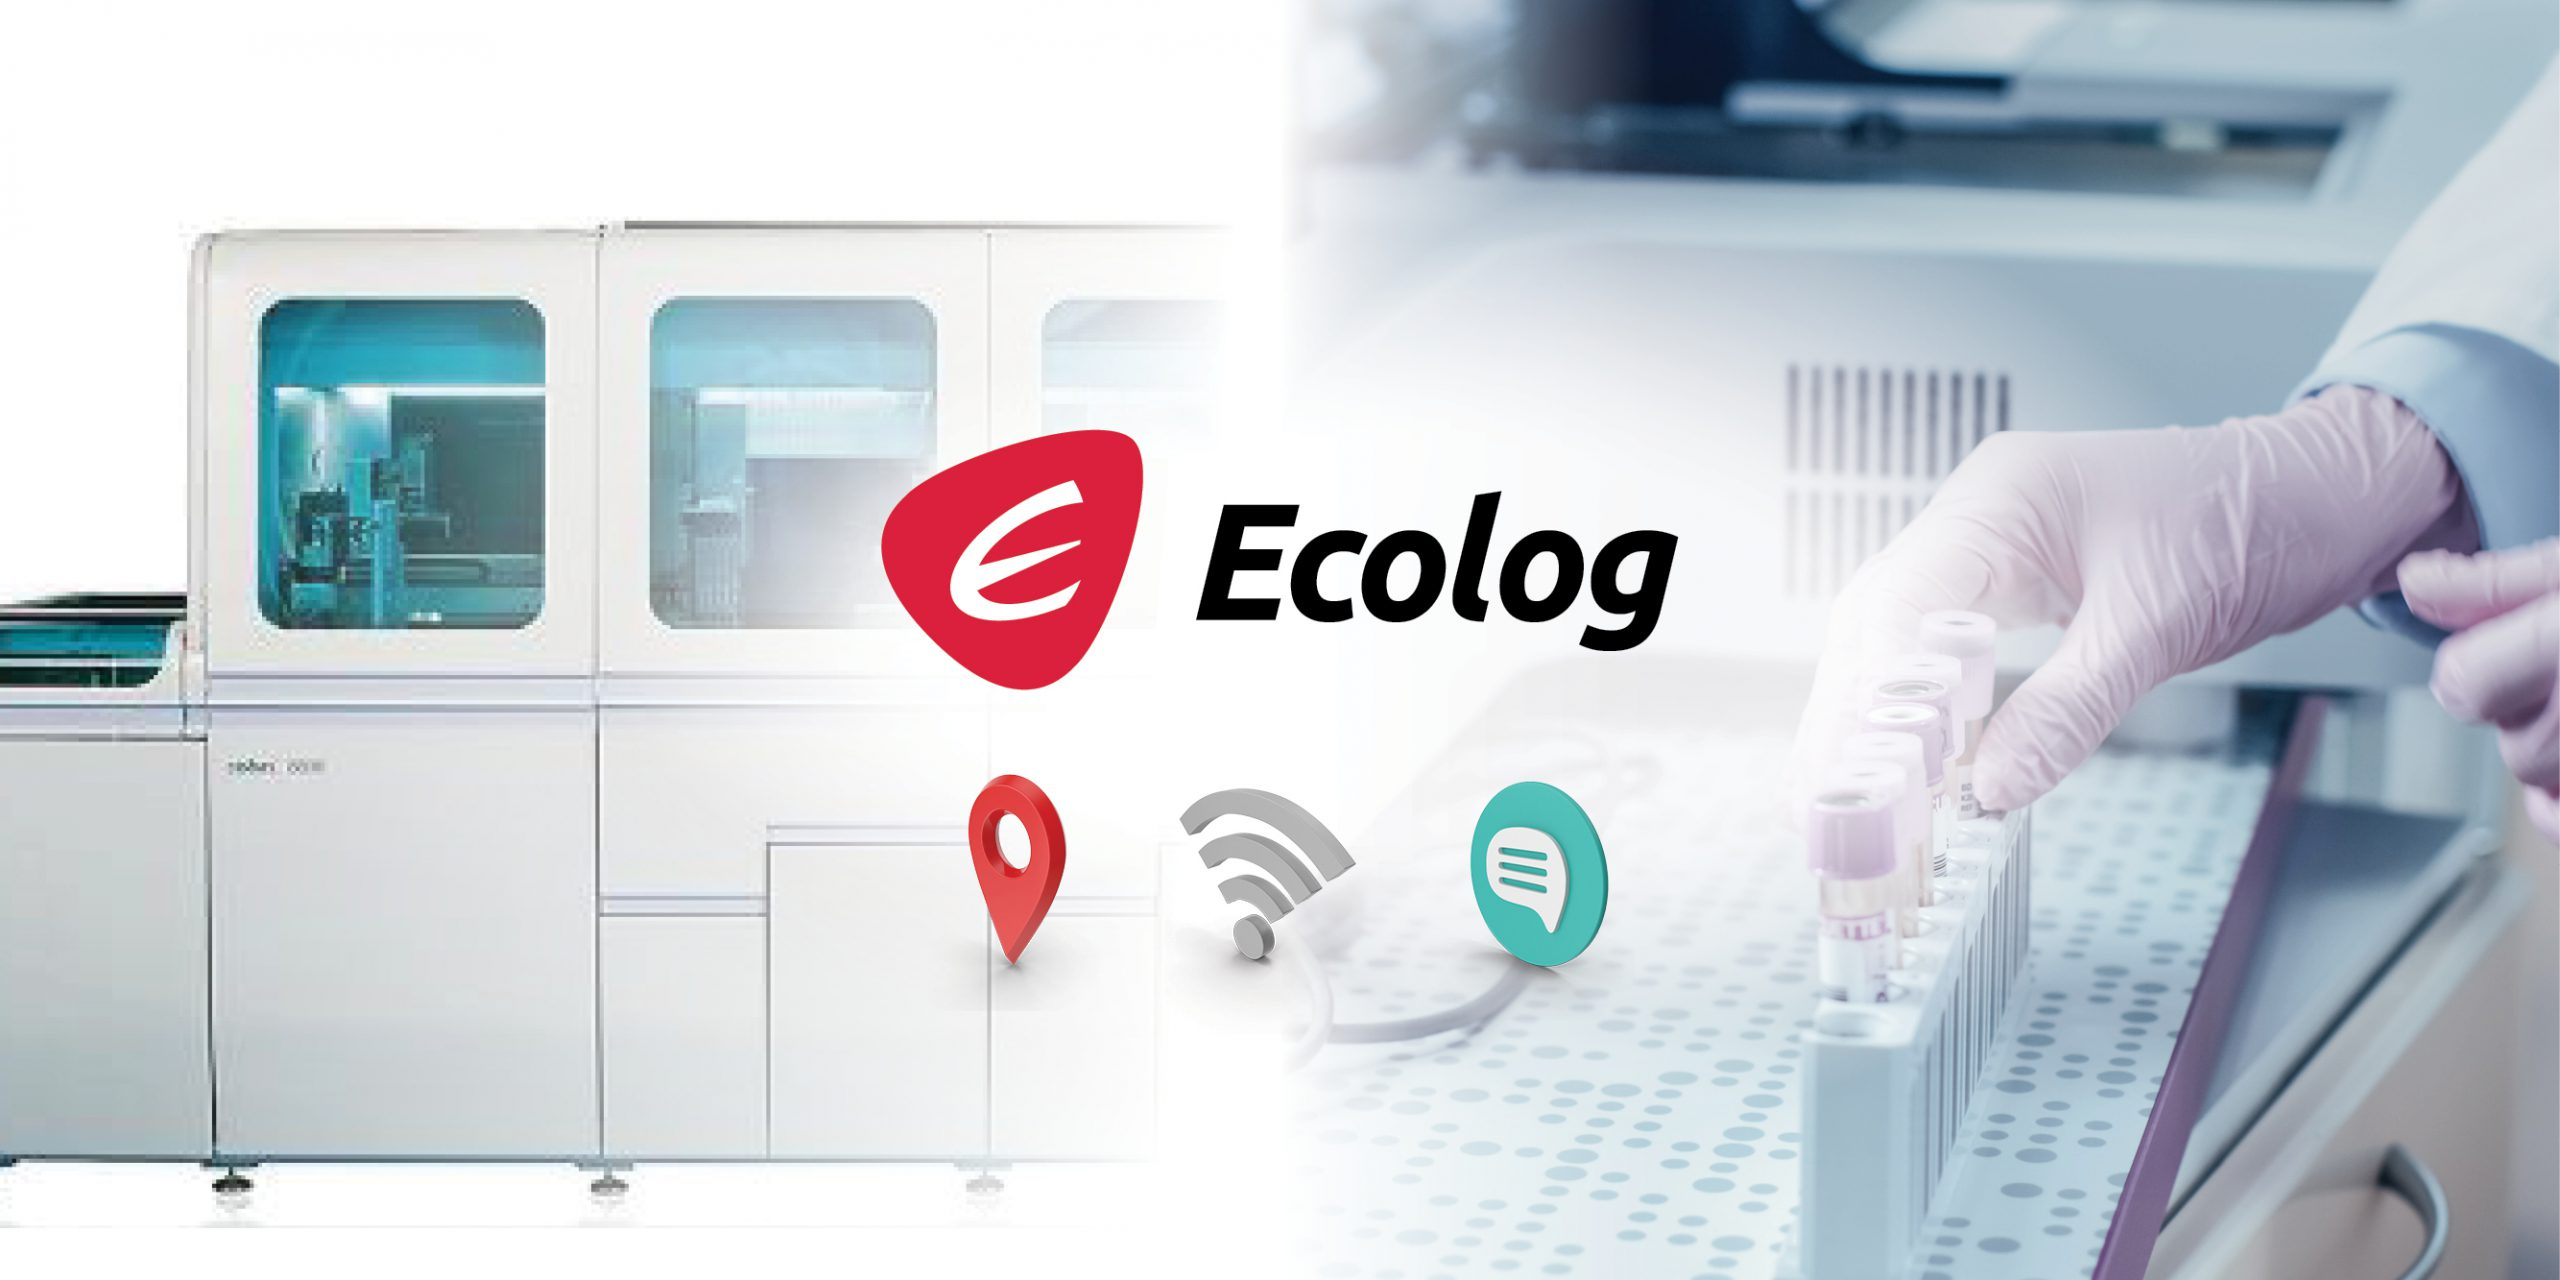 Luxembourg Institute of Health has entrusted Laboratoires Réunis Luxembourg and Ecolog International to perform Luxembourg's nationwide large-scale COVID-19 testing program